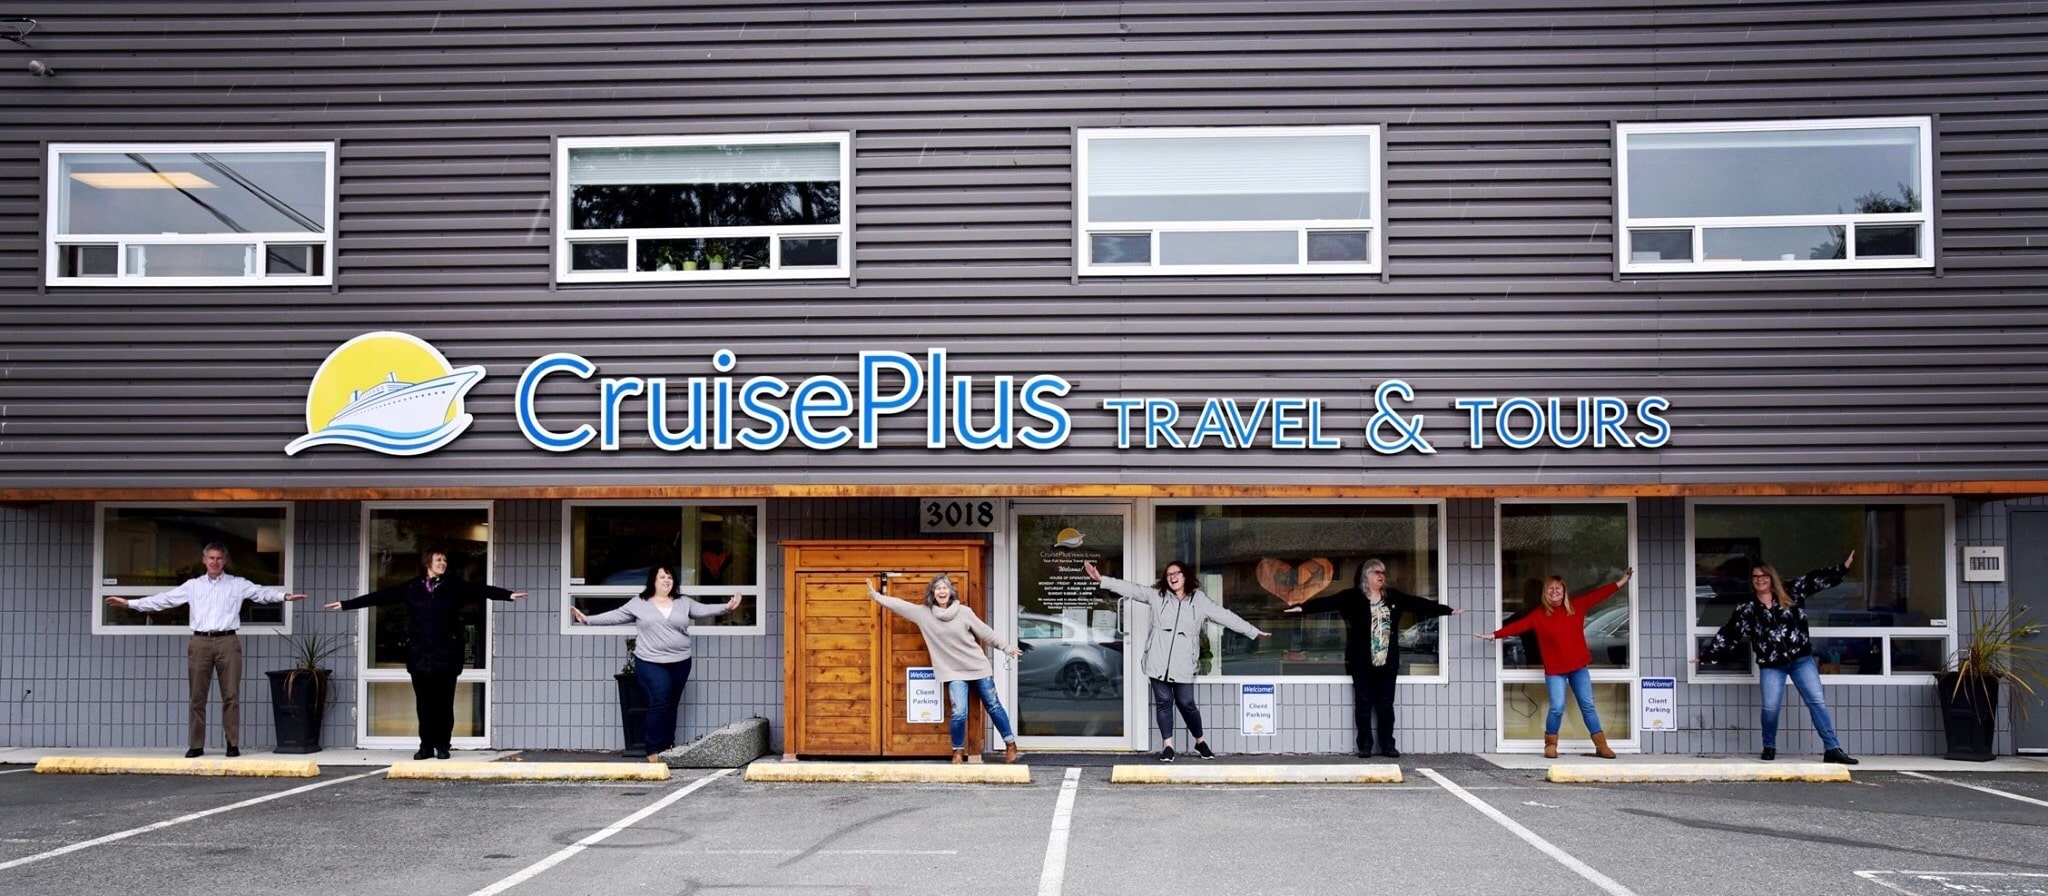 About CruisePlus Travel & Tours - Staff Photo